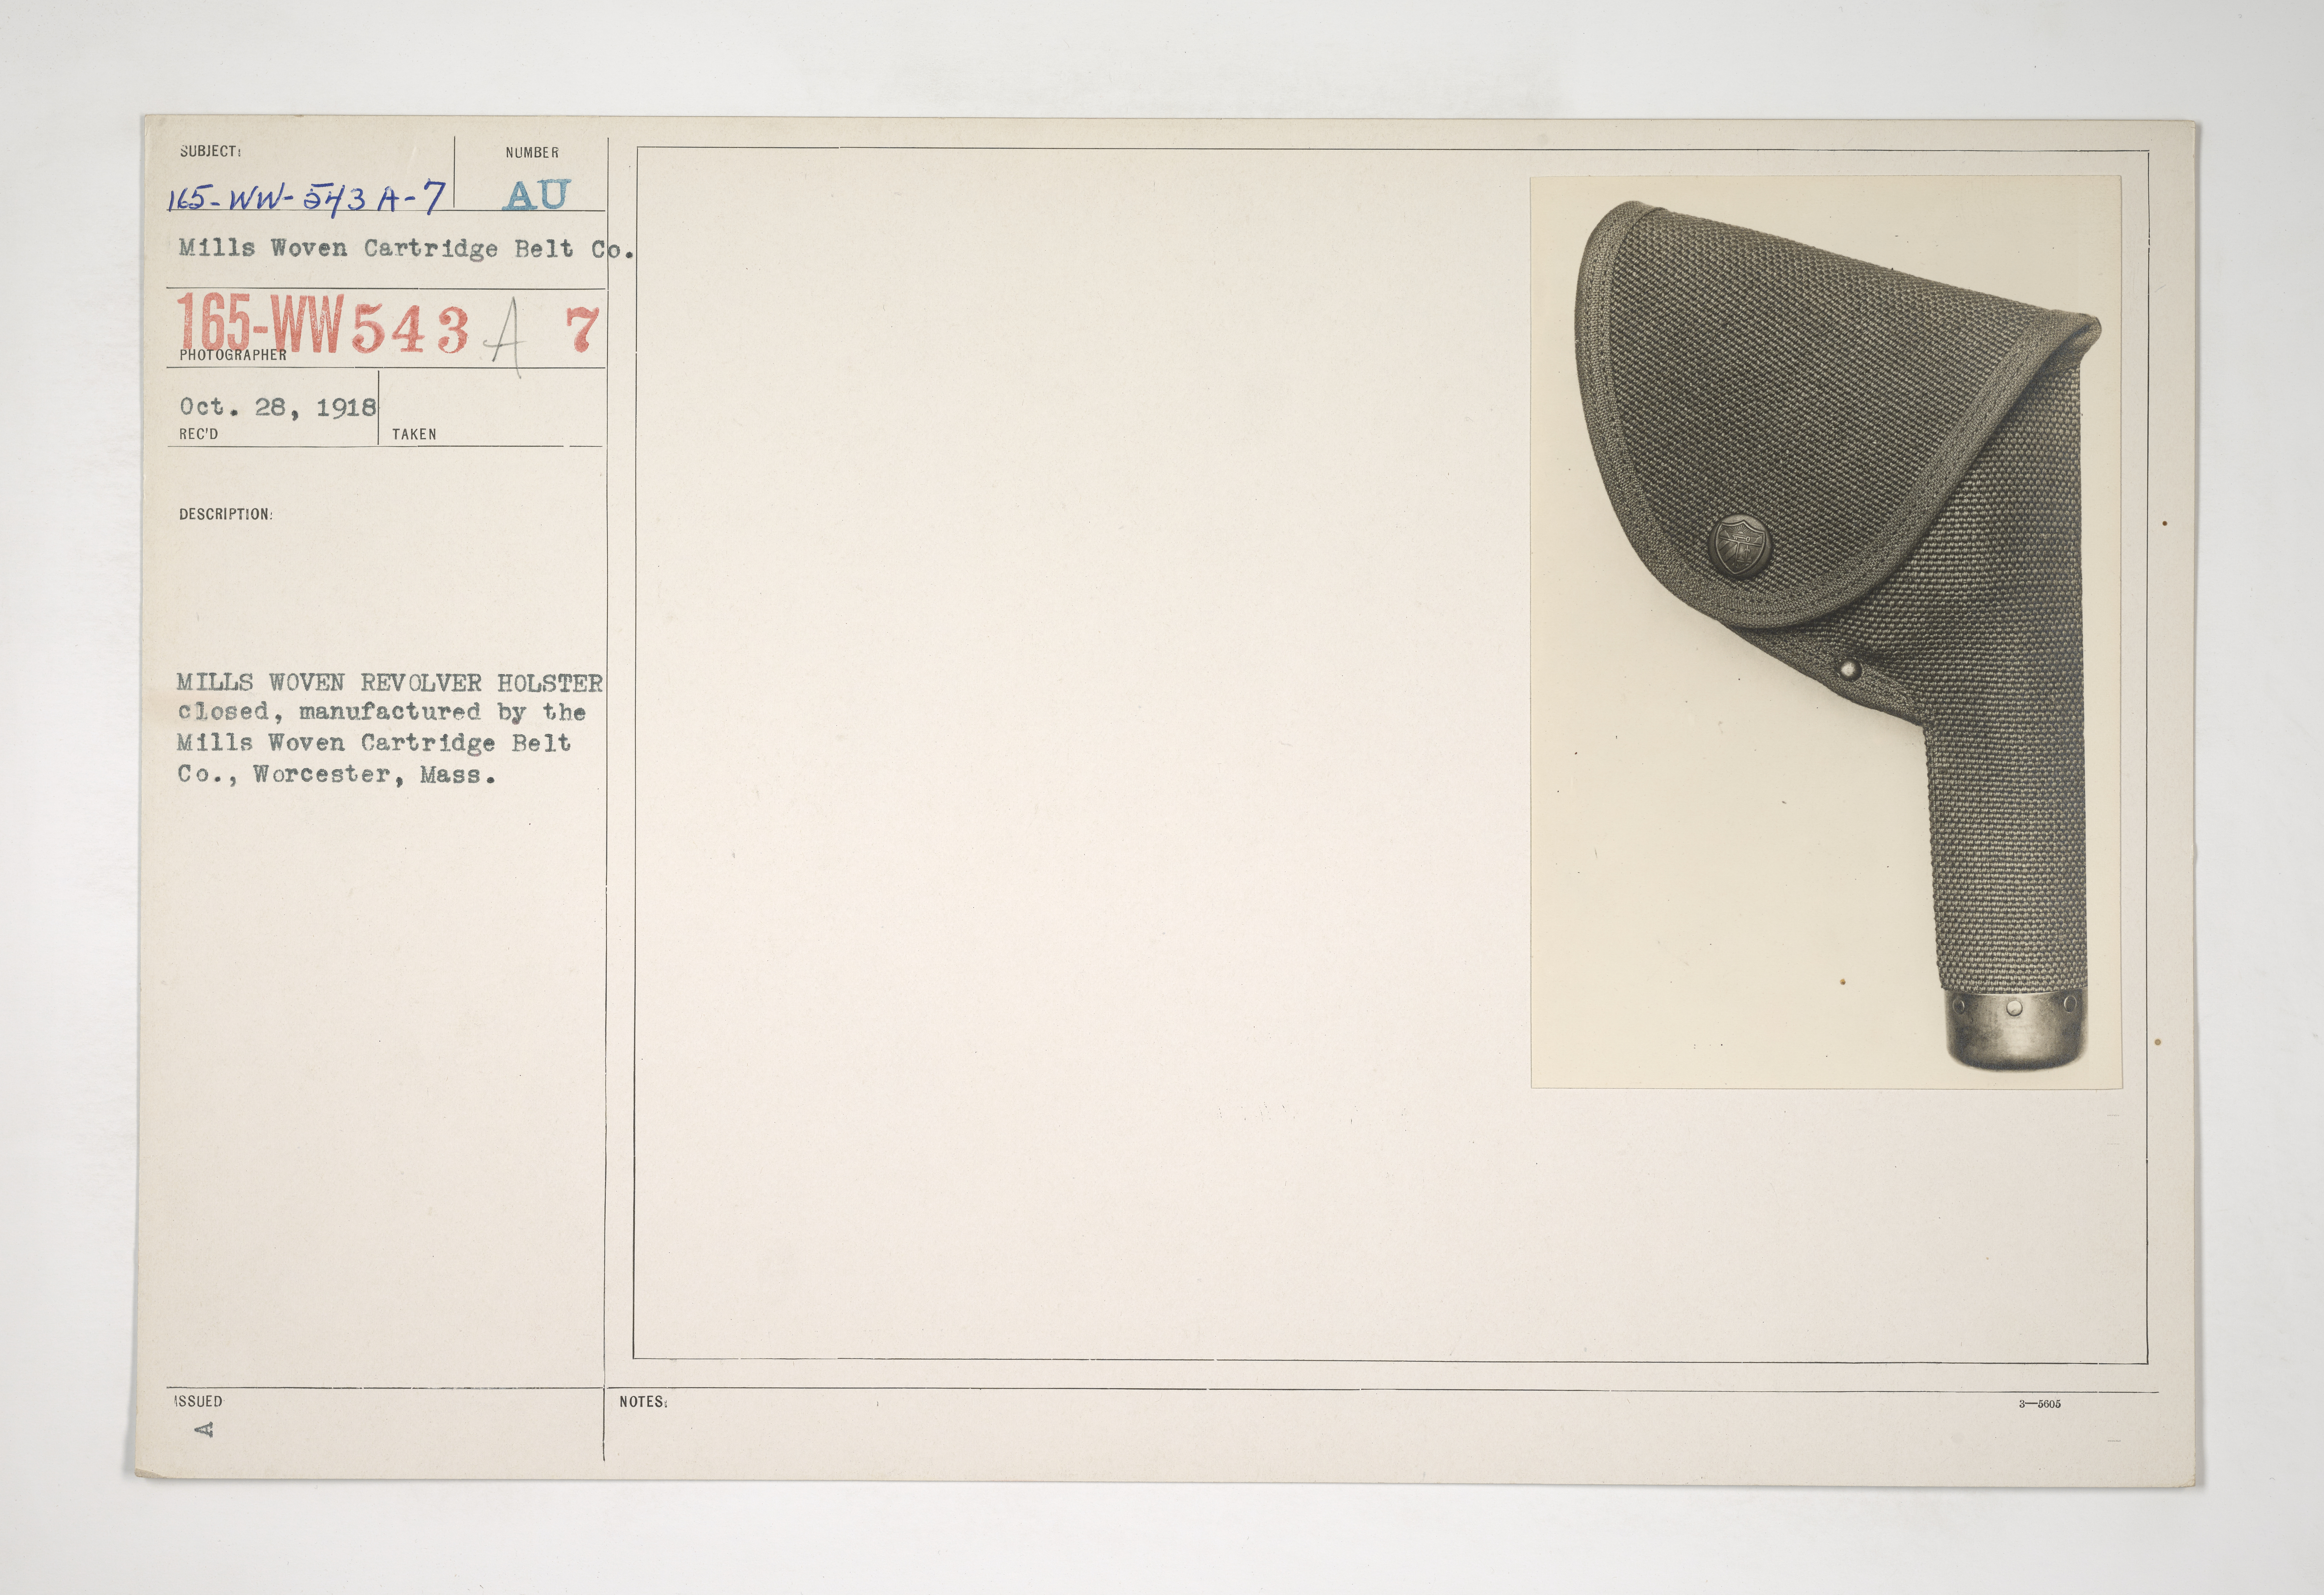 Uniforms and Equipment - Pouches and Scabbards [165-WW-543A-7]